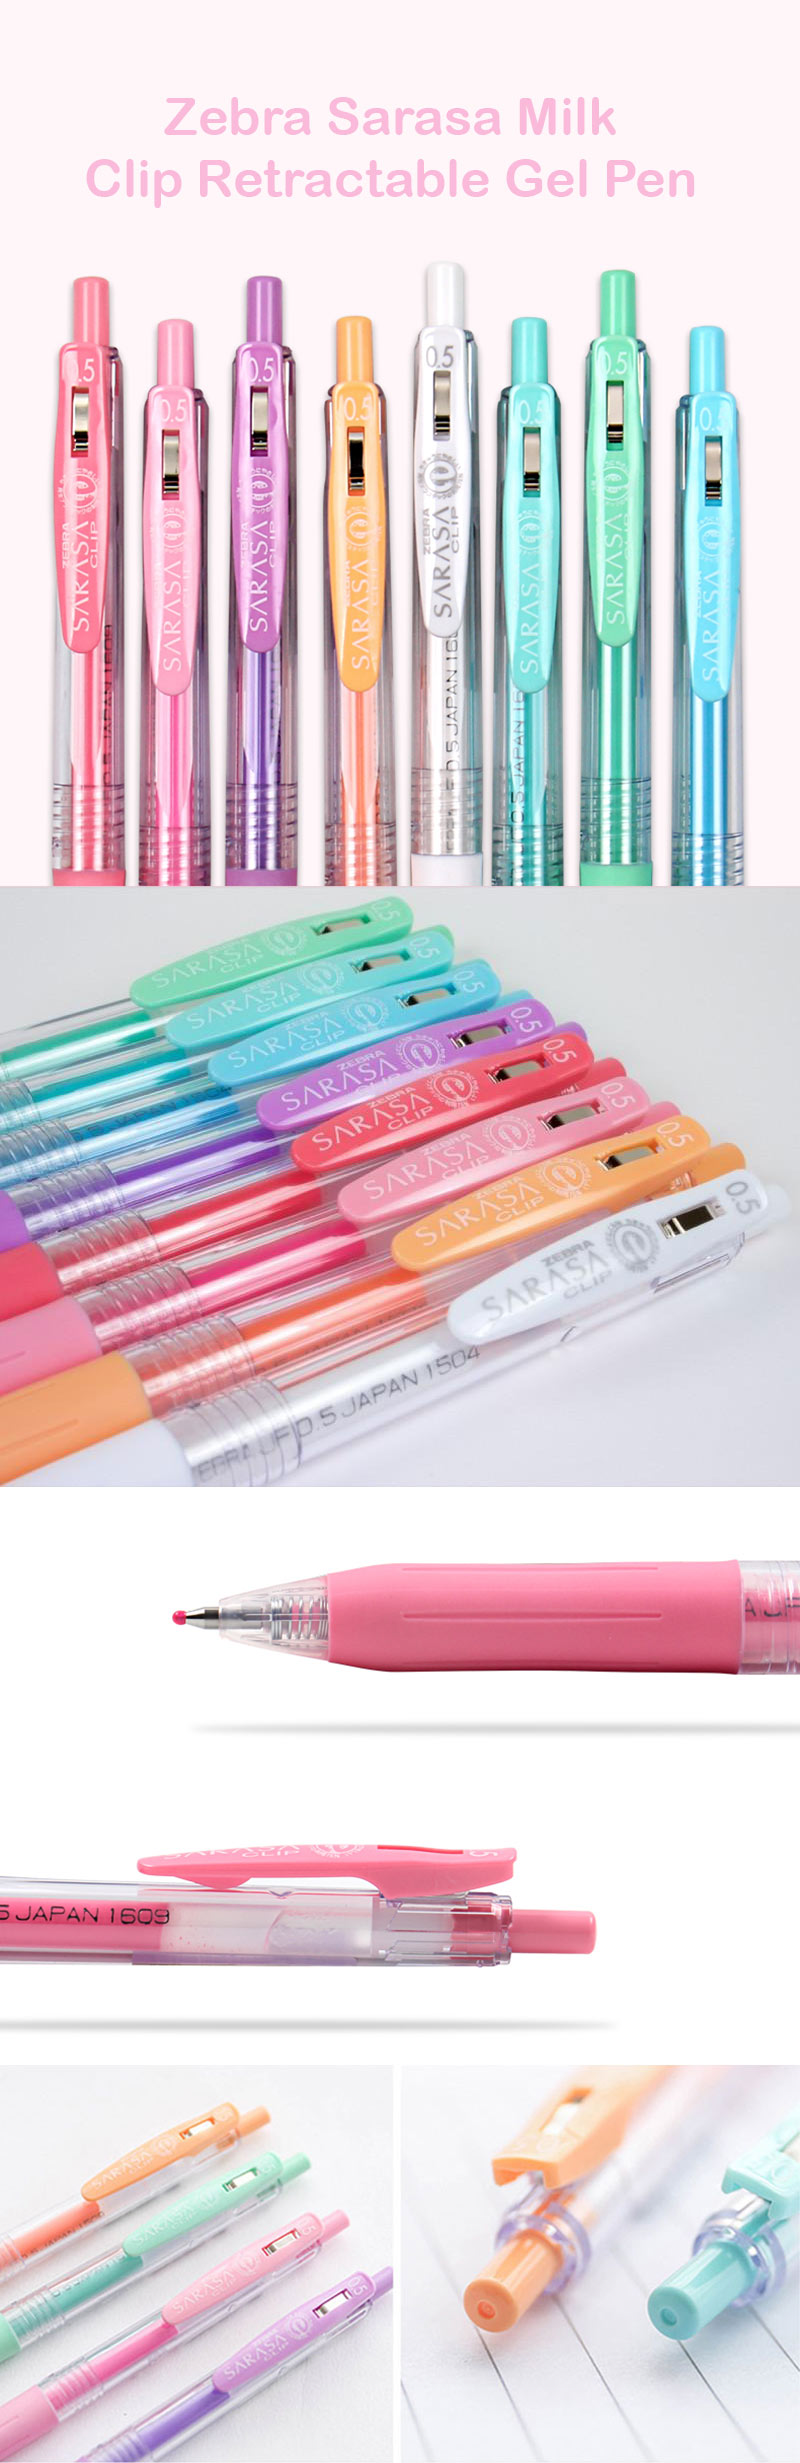 Zebra Sarasa Milk Color Clip Retractable Gel Pen Set - Detail